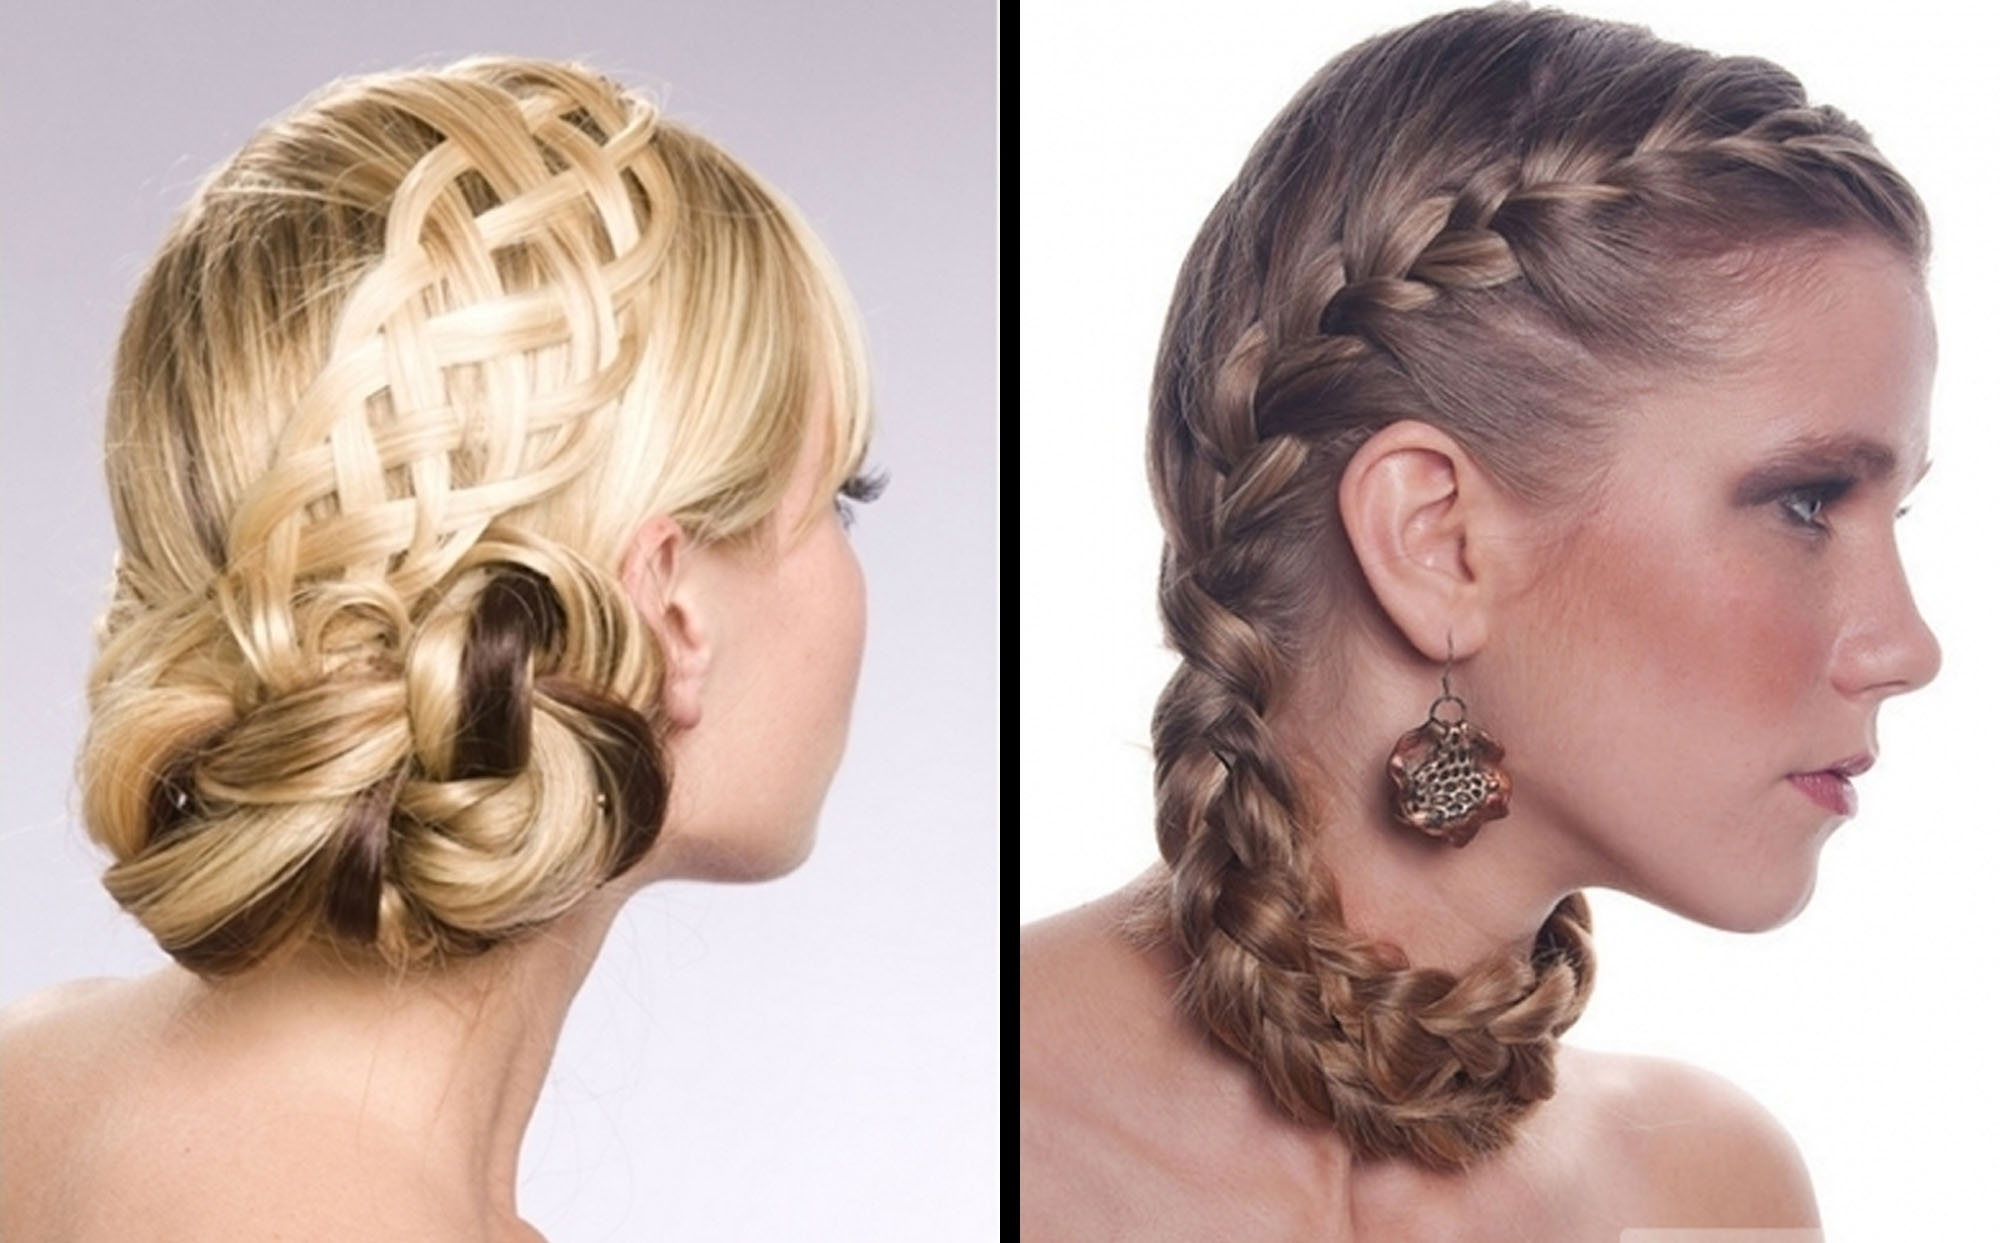 Hairstyles For Homecoming Updos Hair Braided Updo Hairstyles Salon In Homecoming Updo Hairstyles (View 7 of 15)